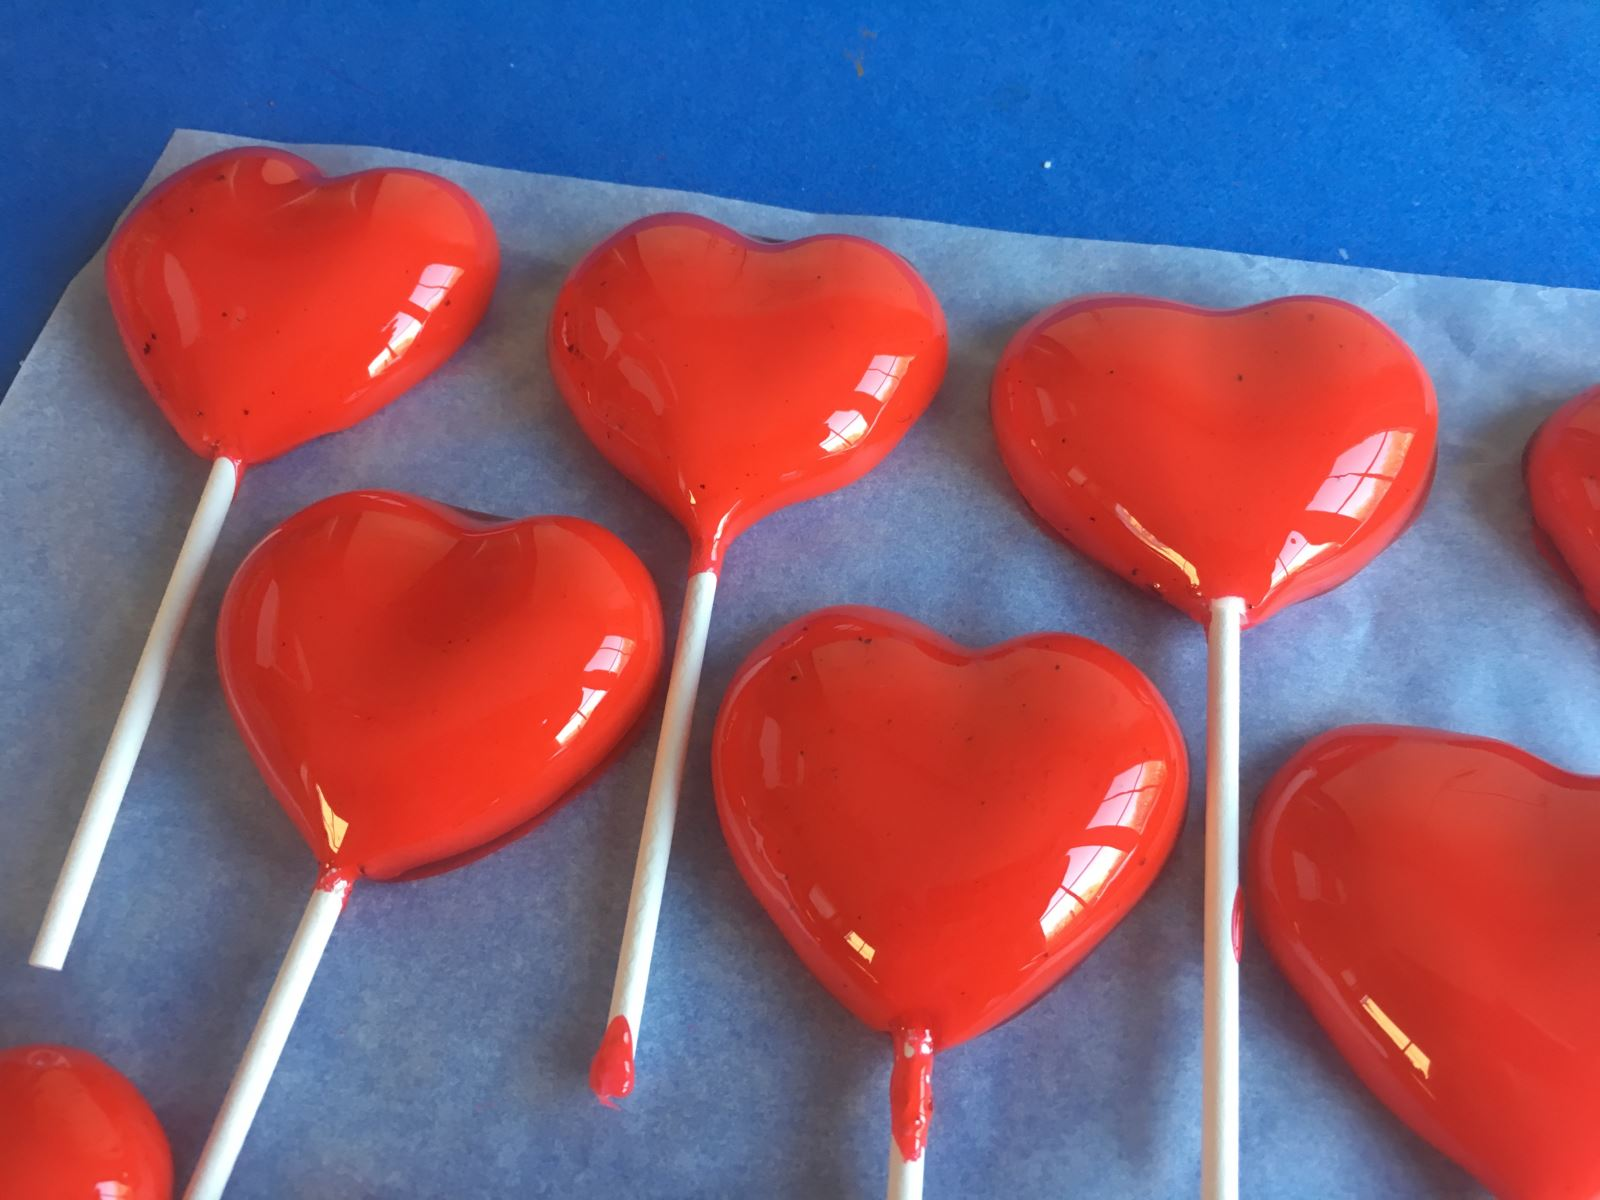 5 Place the hearts onto greaseproof paper to harden.